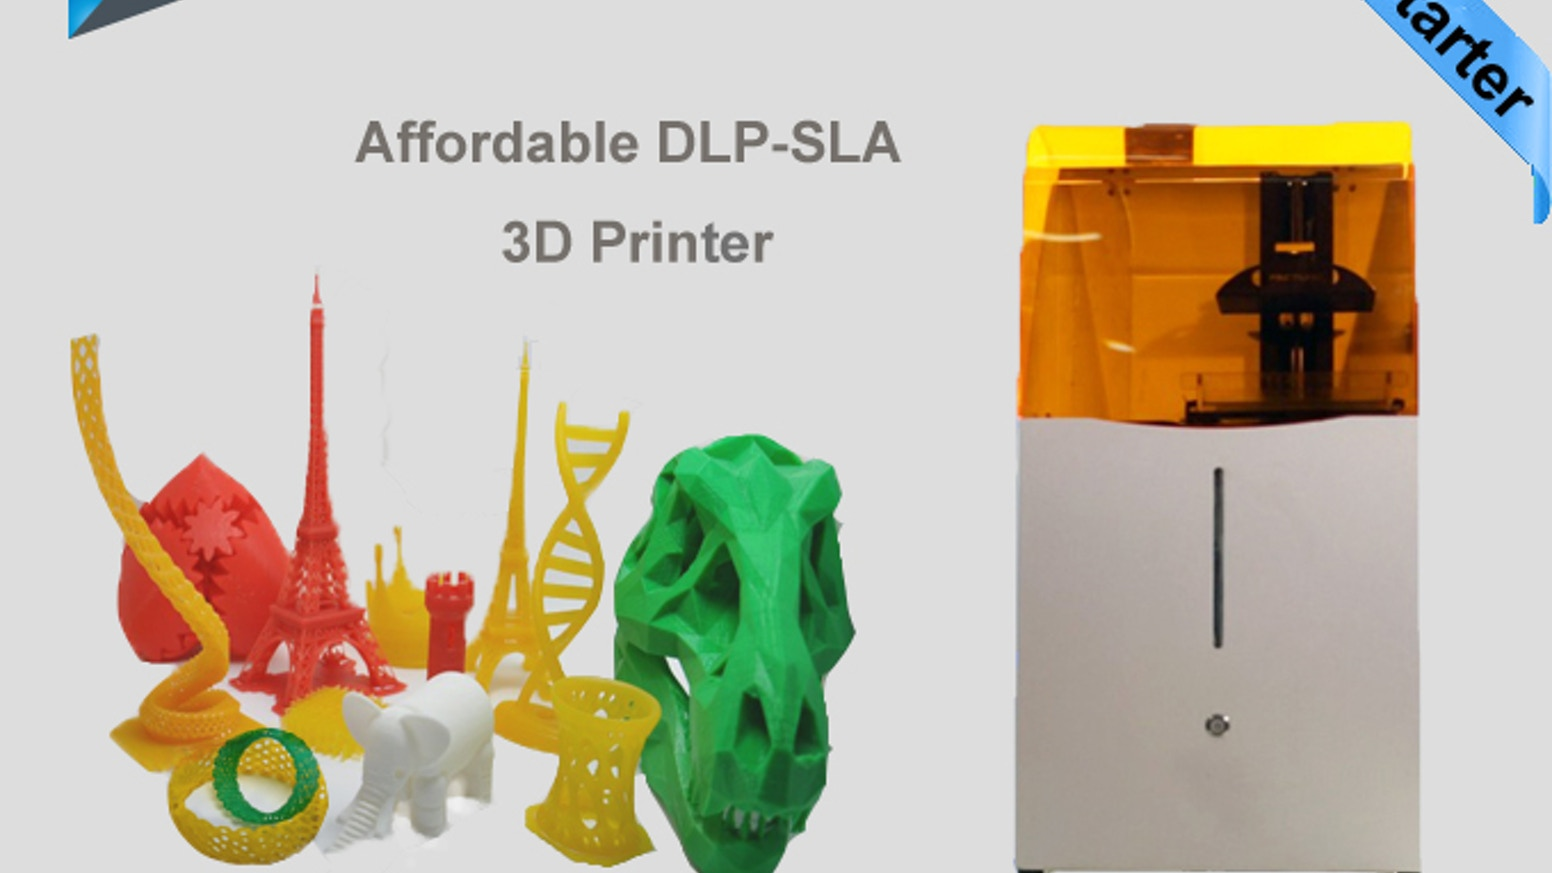 Draken is characterized by its large build area, 37 micron XY resolution, low noise, and high print speed